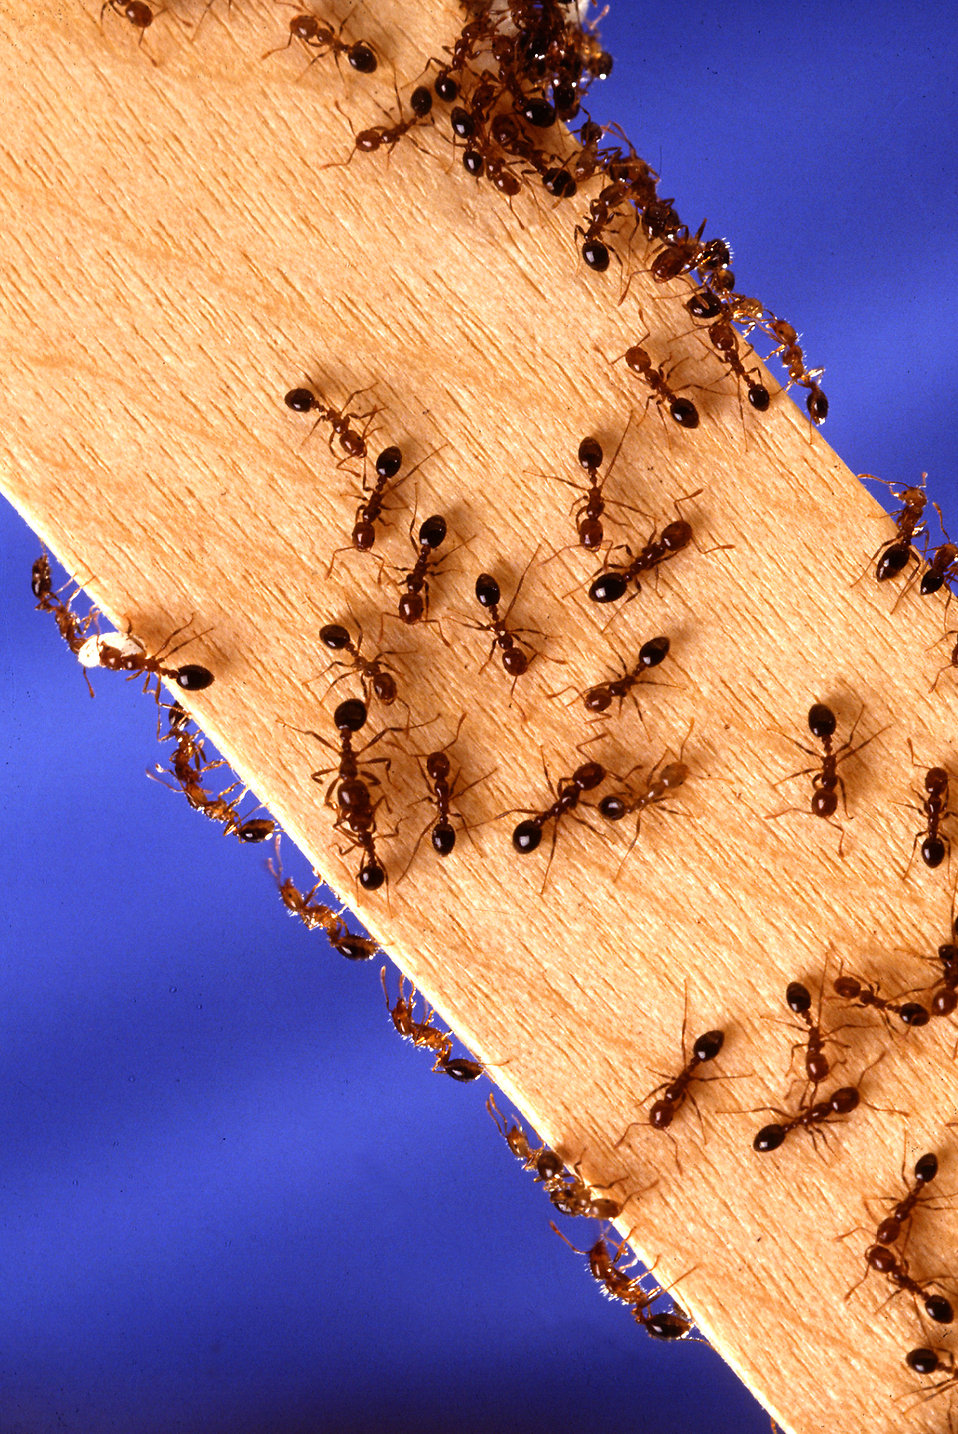 Fire ants on a wooden stick : Free Stock Photo